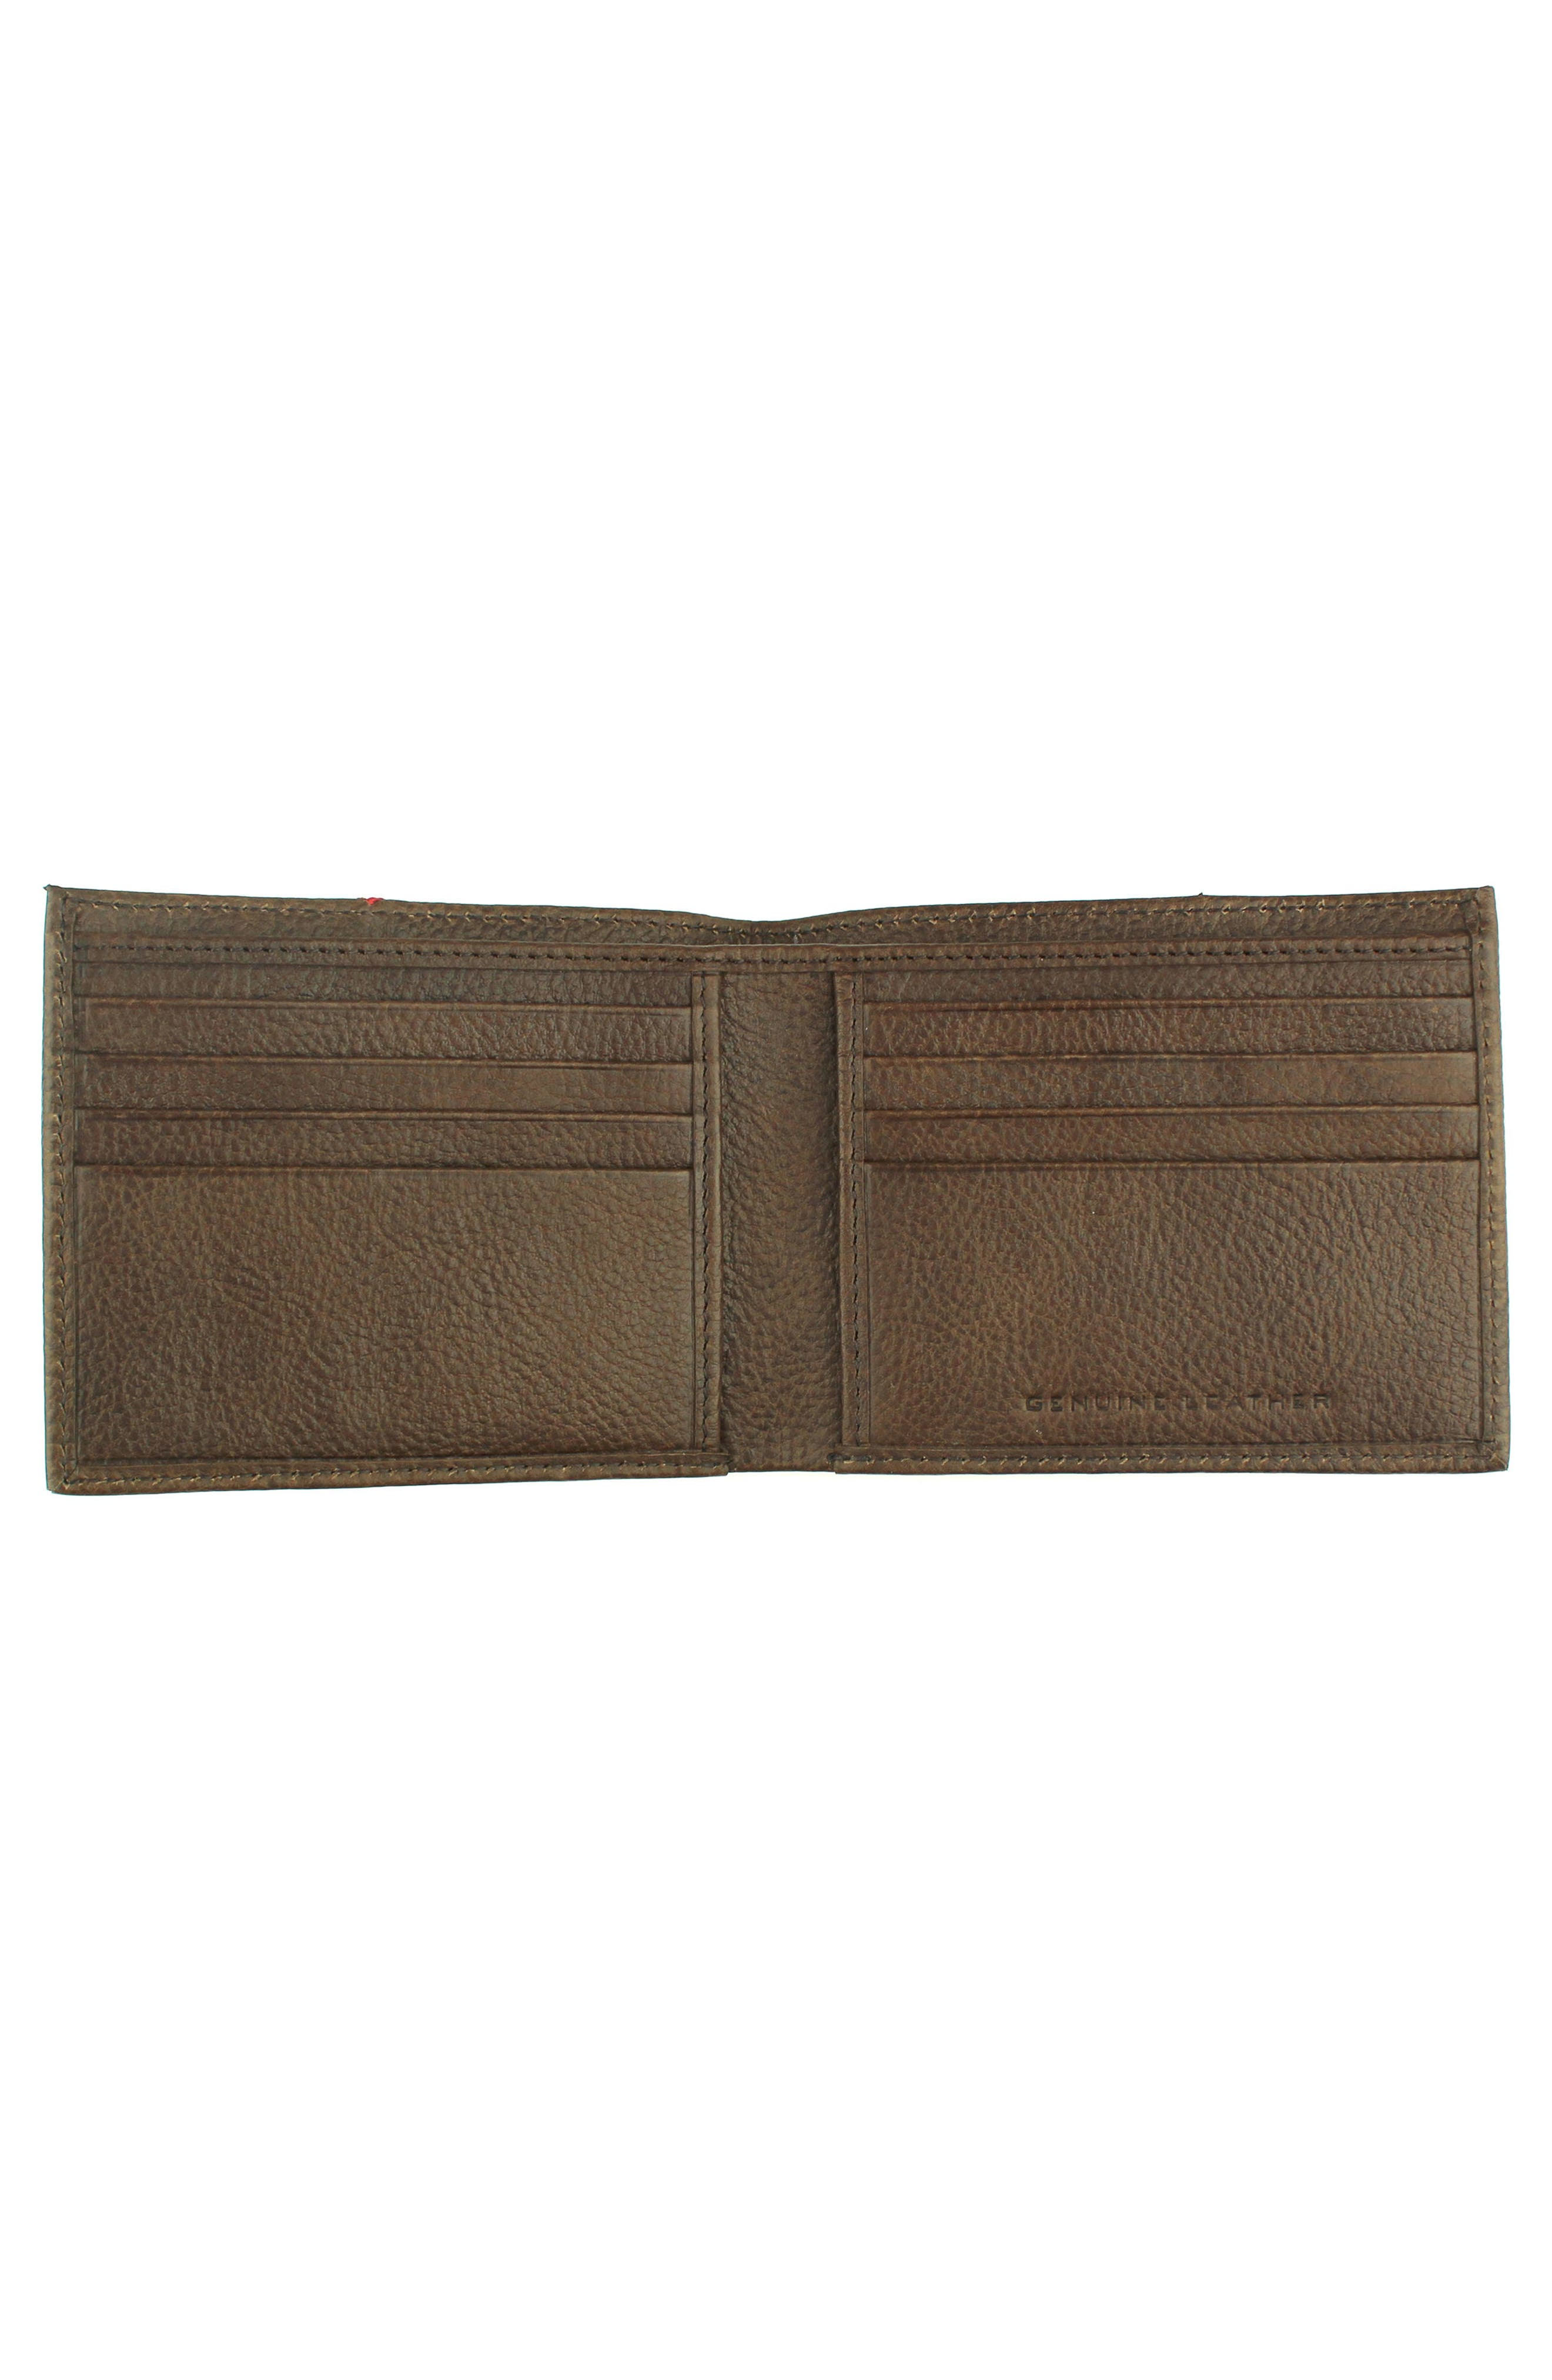 Home Run Bifold Leather Wallet,                             Alternate thumbnail 6, color,